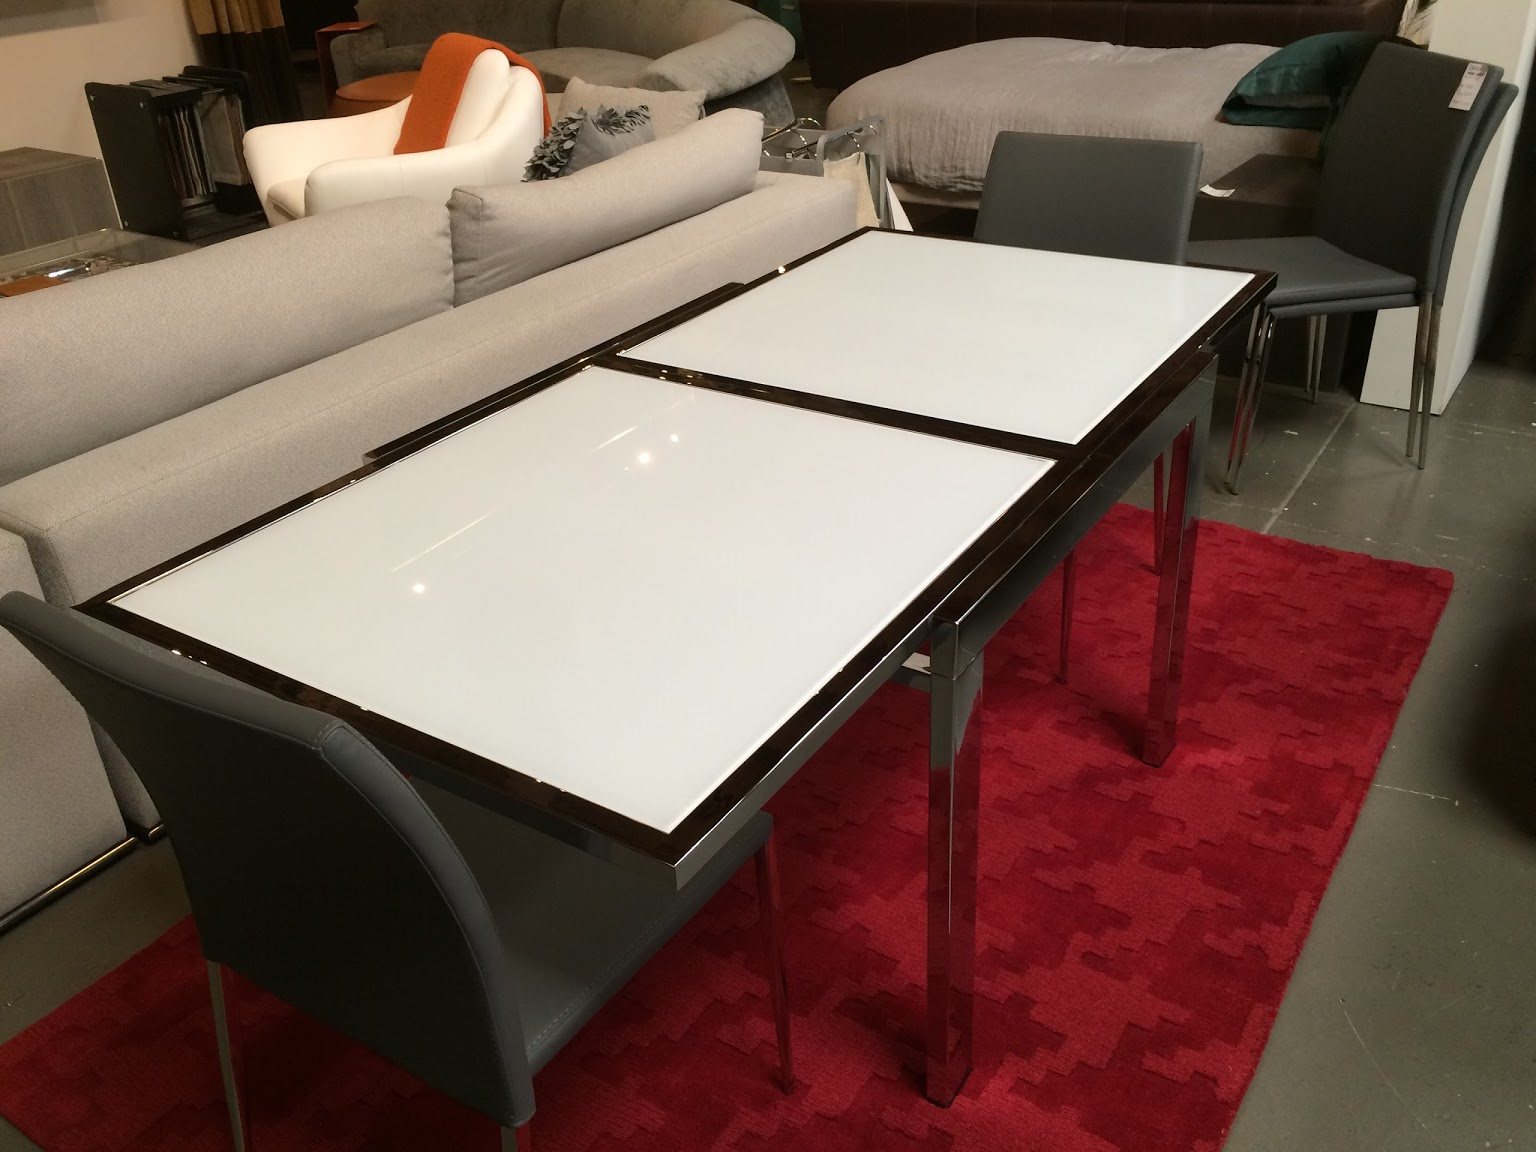 eurostyle offers an extensive collection of affordable modern furniture that is in stock in the bay area and ready for immediate home delivery